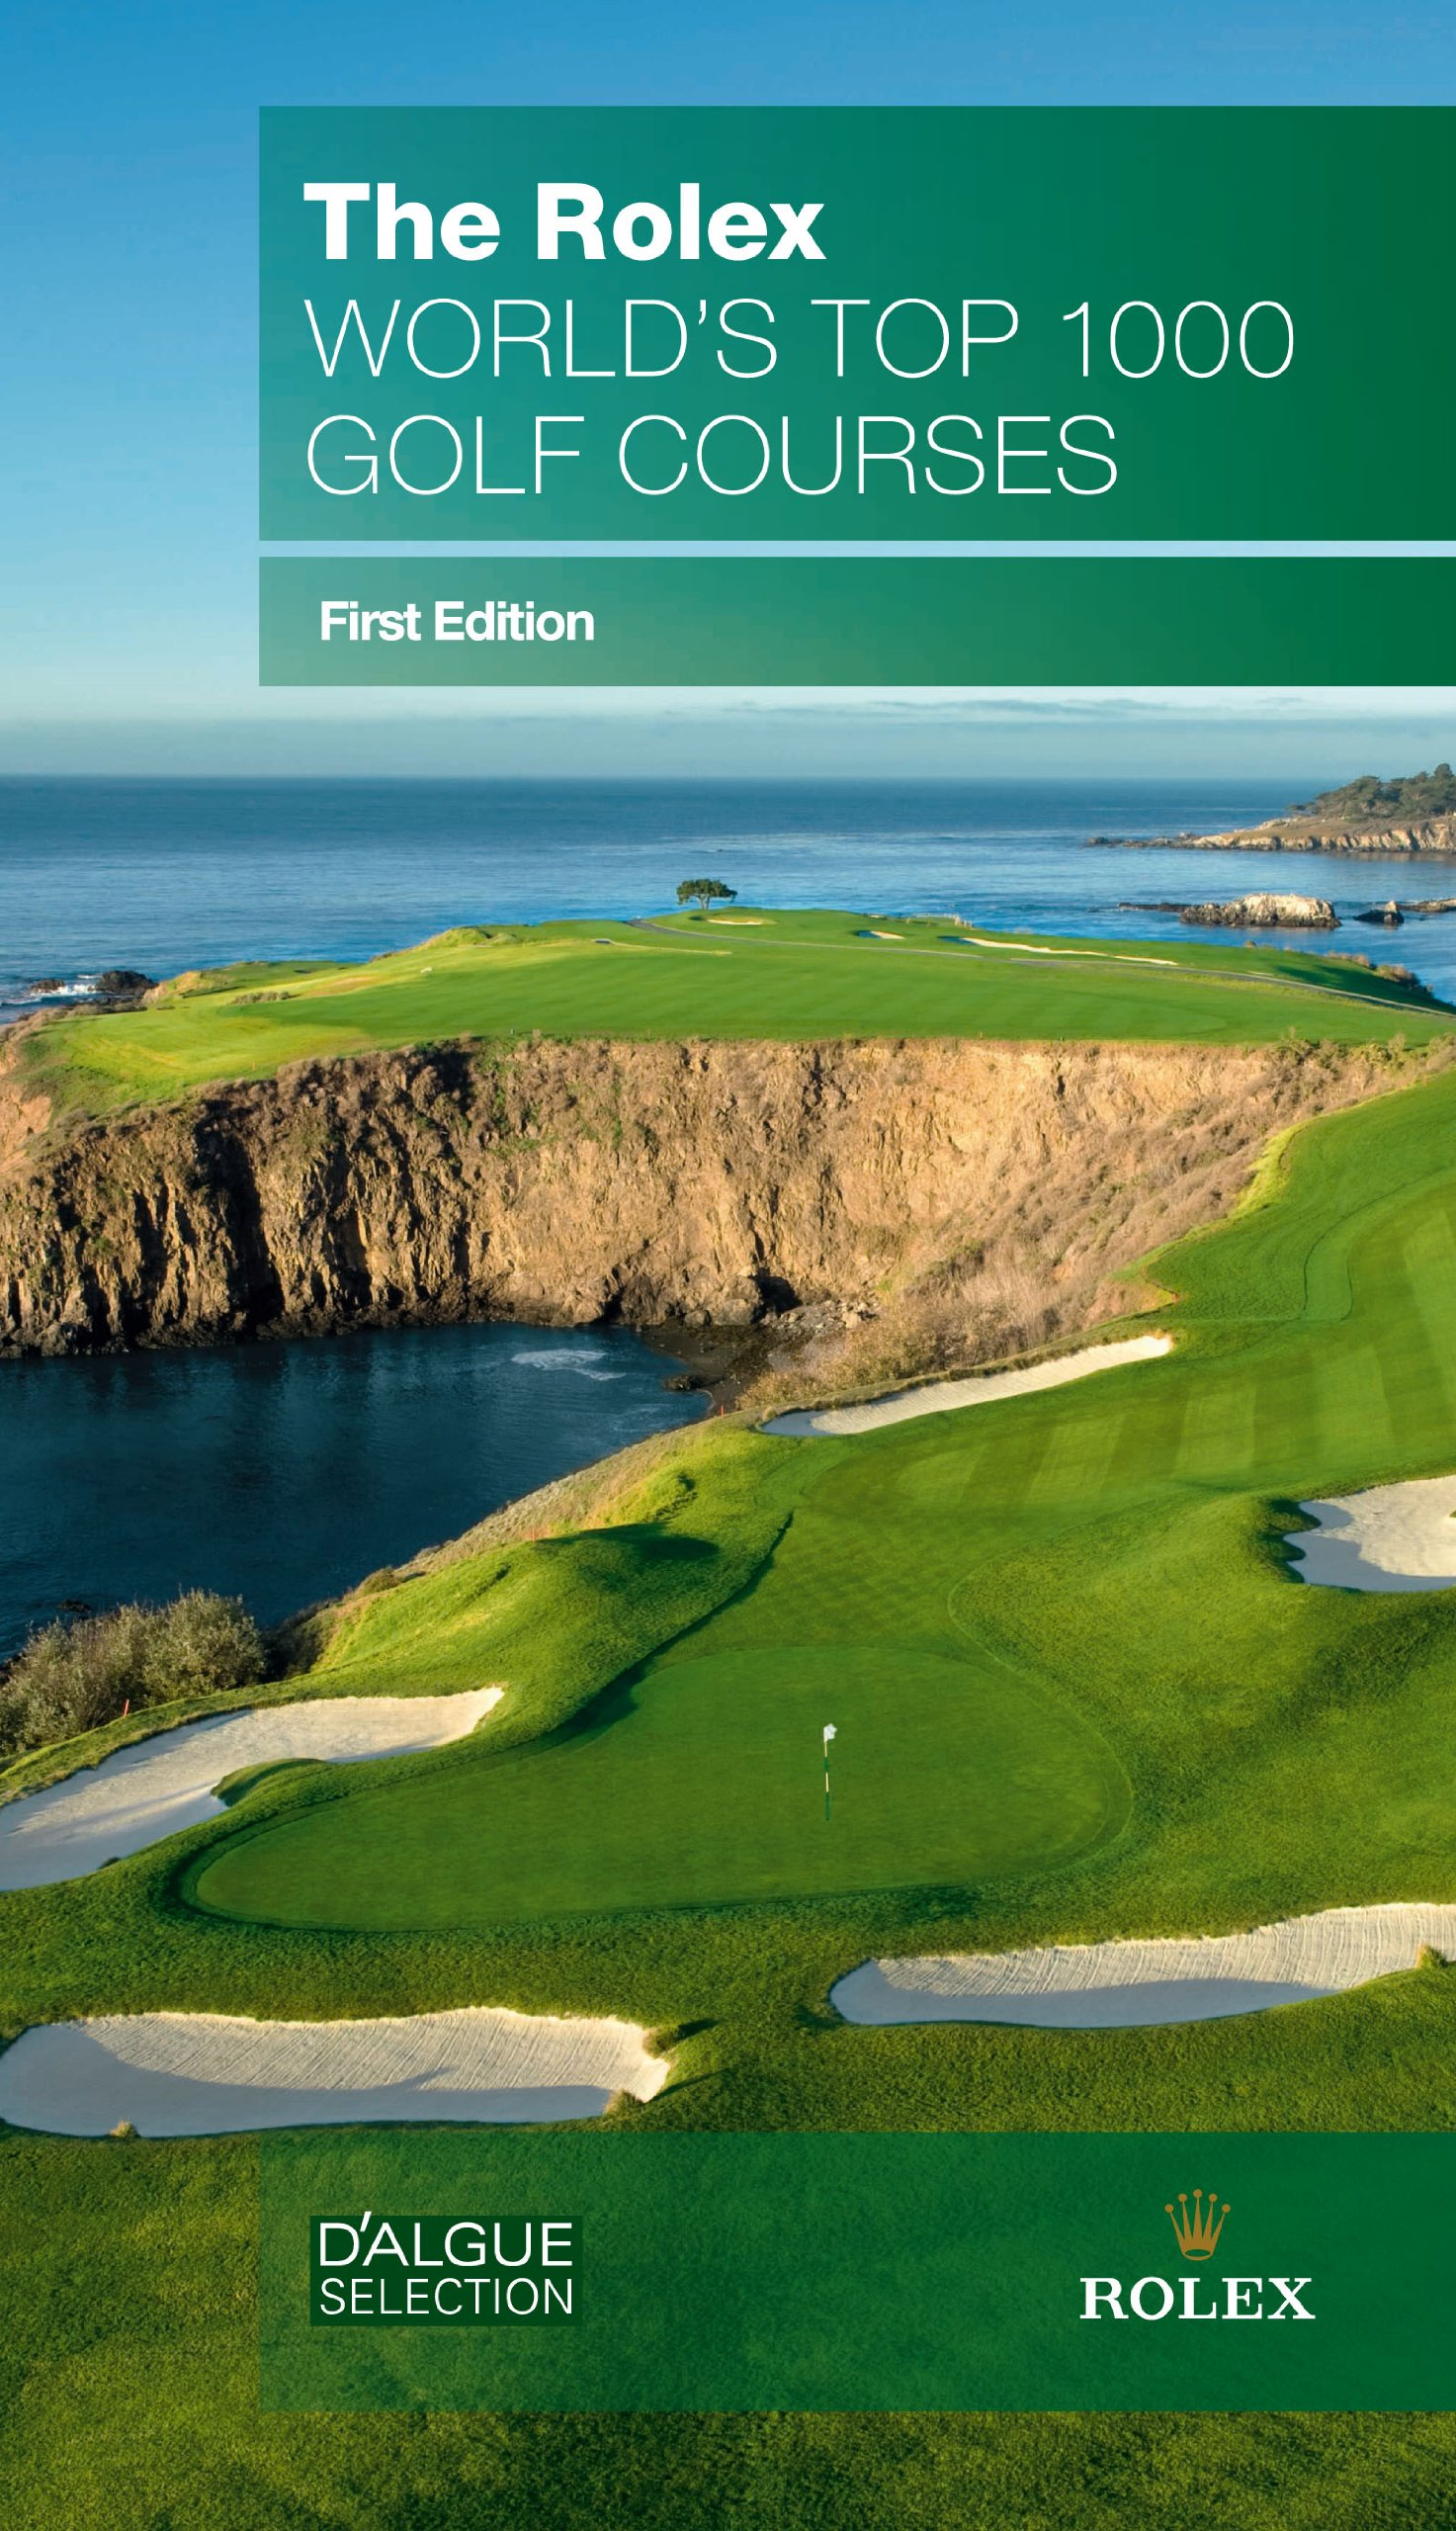 The Rolex World's Top 1000 Golf Courses pdf